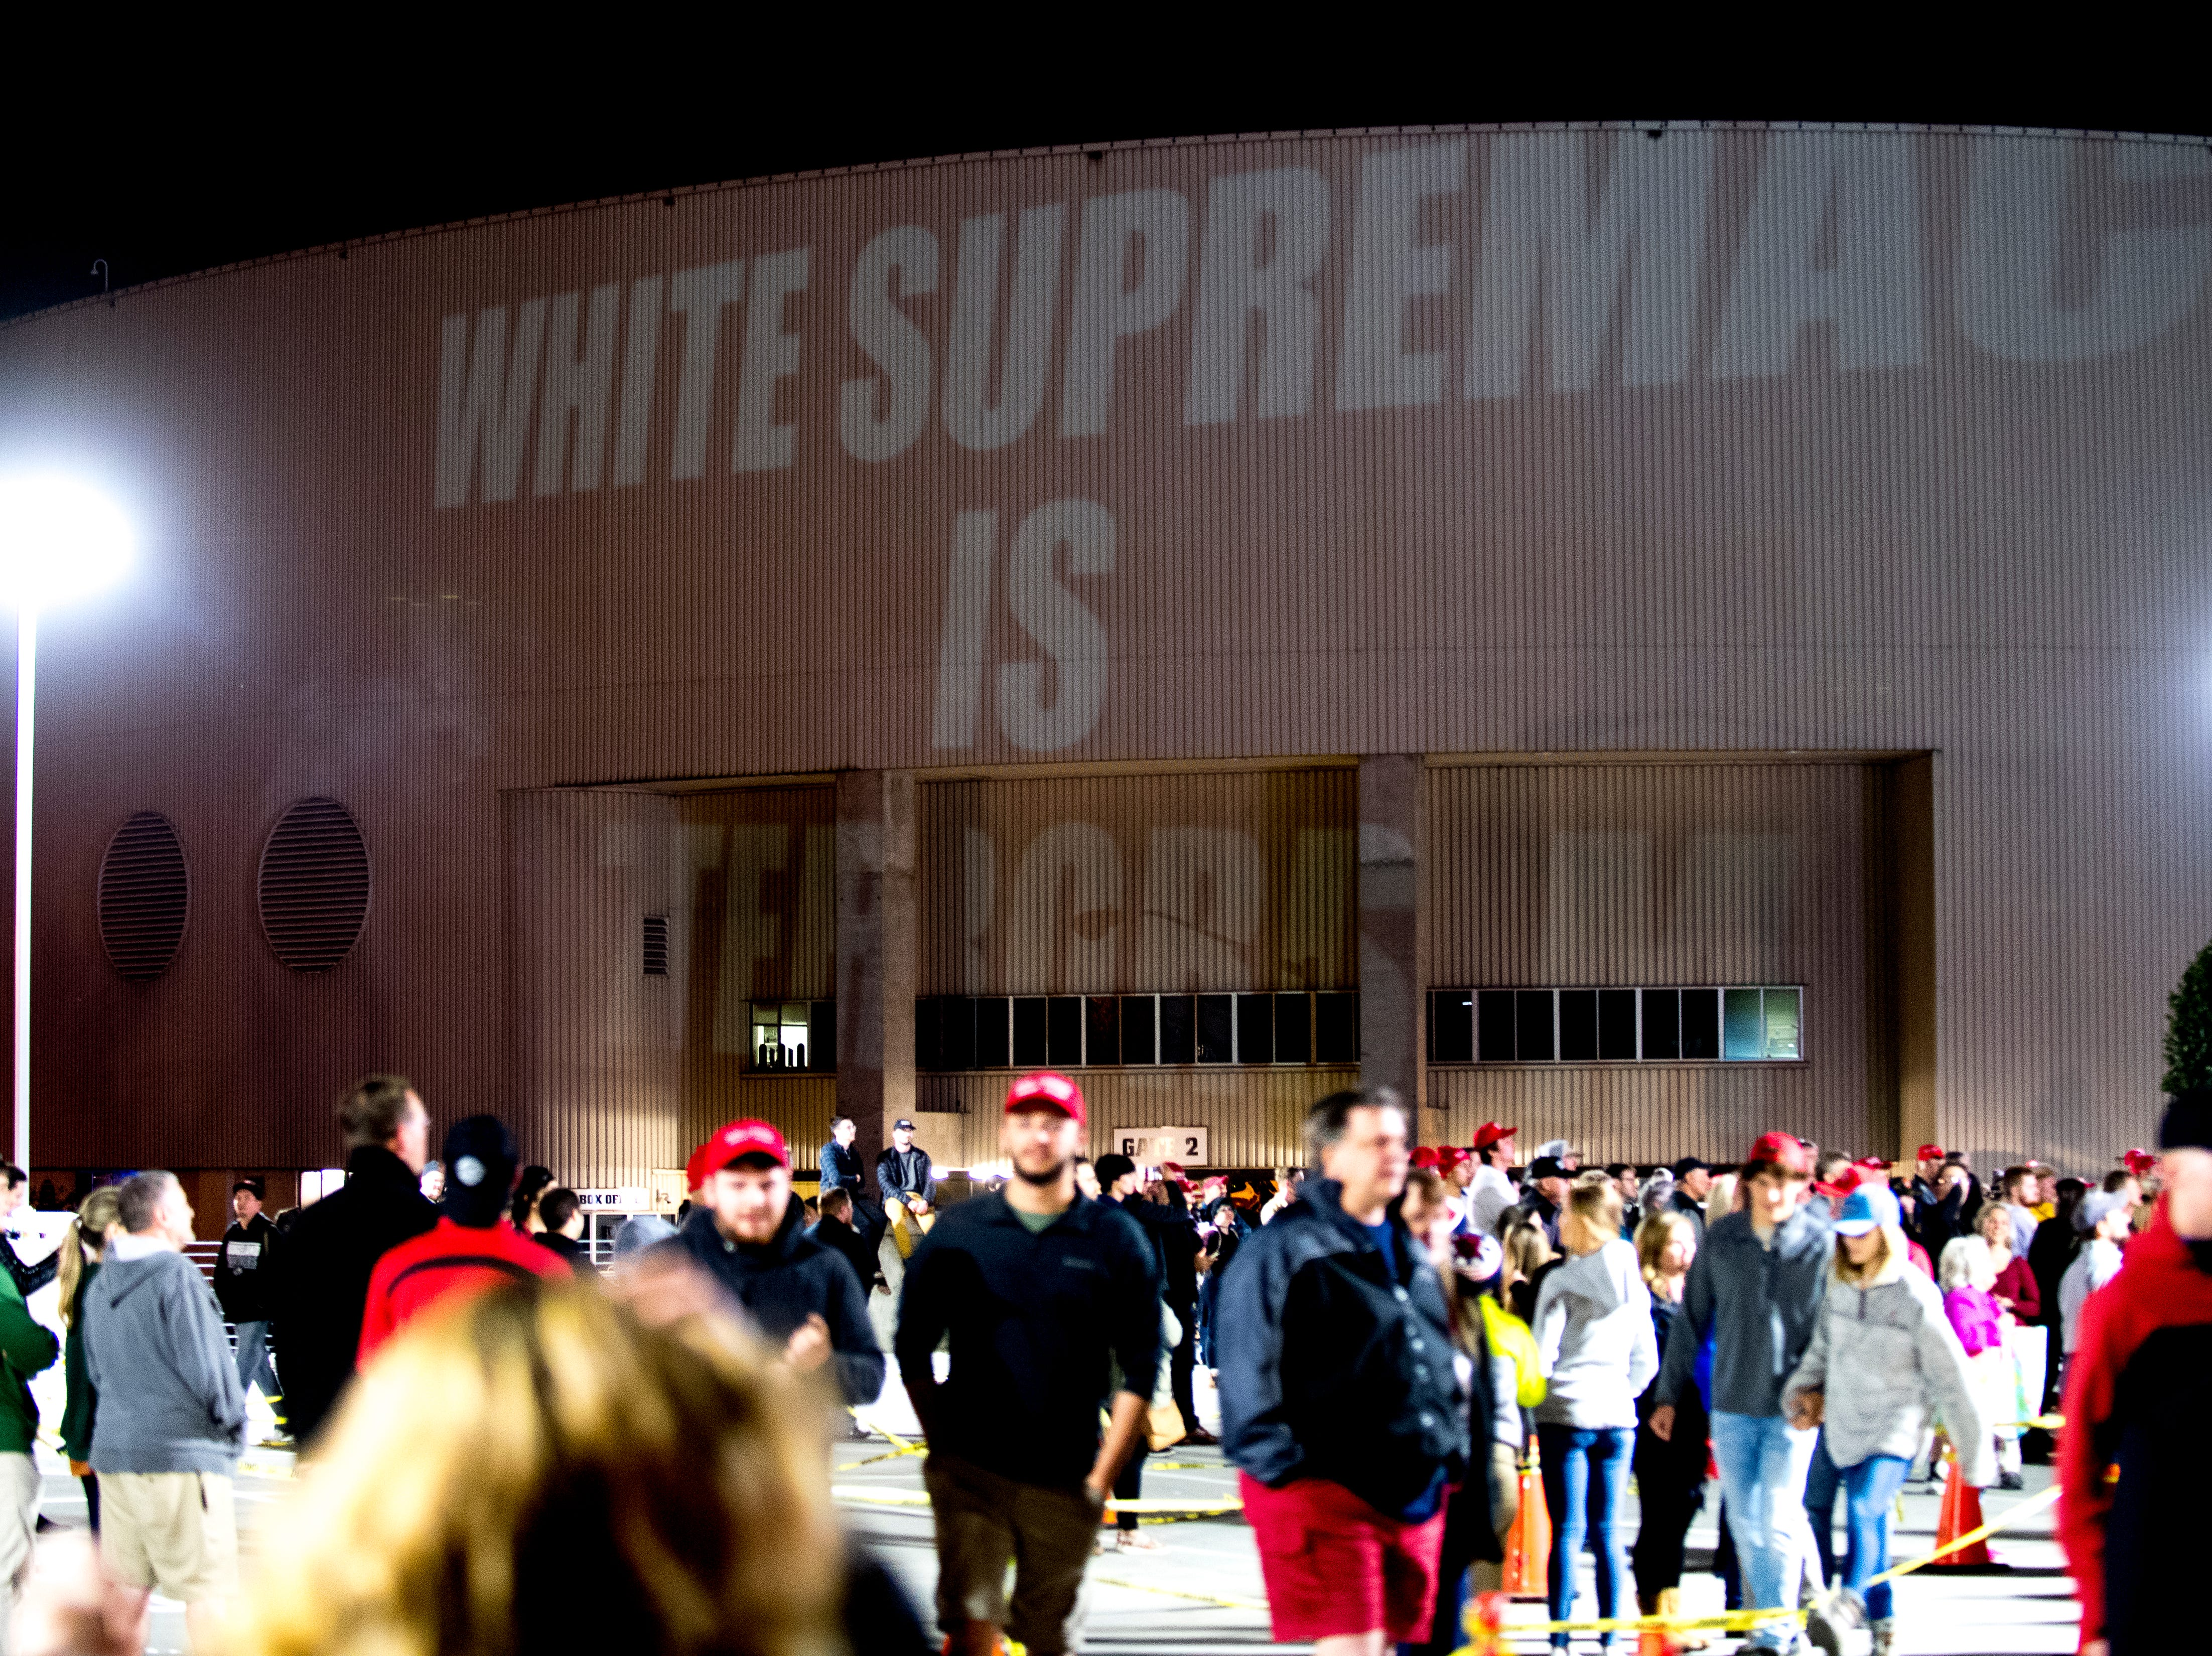 """""""White Supremacy is Terrorism"""" is projected onto the arena during President Donald J. Trump's """"Make America Great Again"""" Rally at McKenzie Arena in Chattanooga, Tennessee on Sunday, November 4, 2018."""